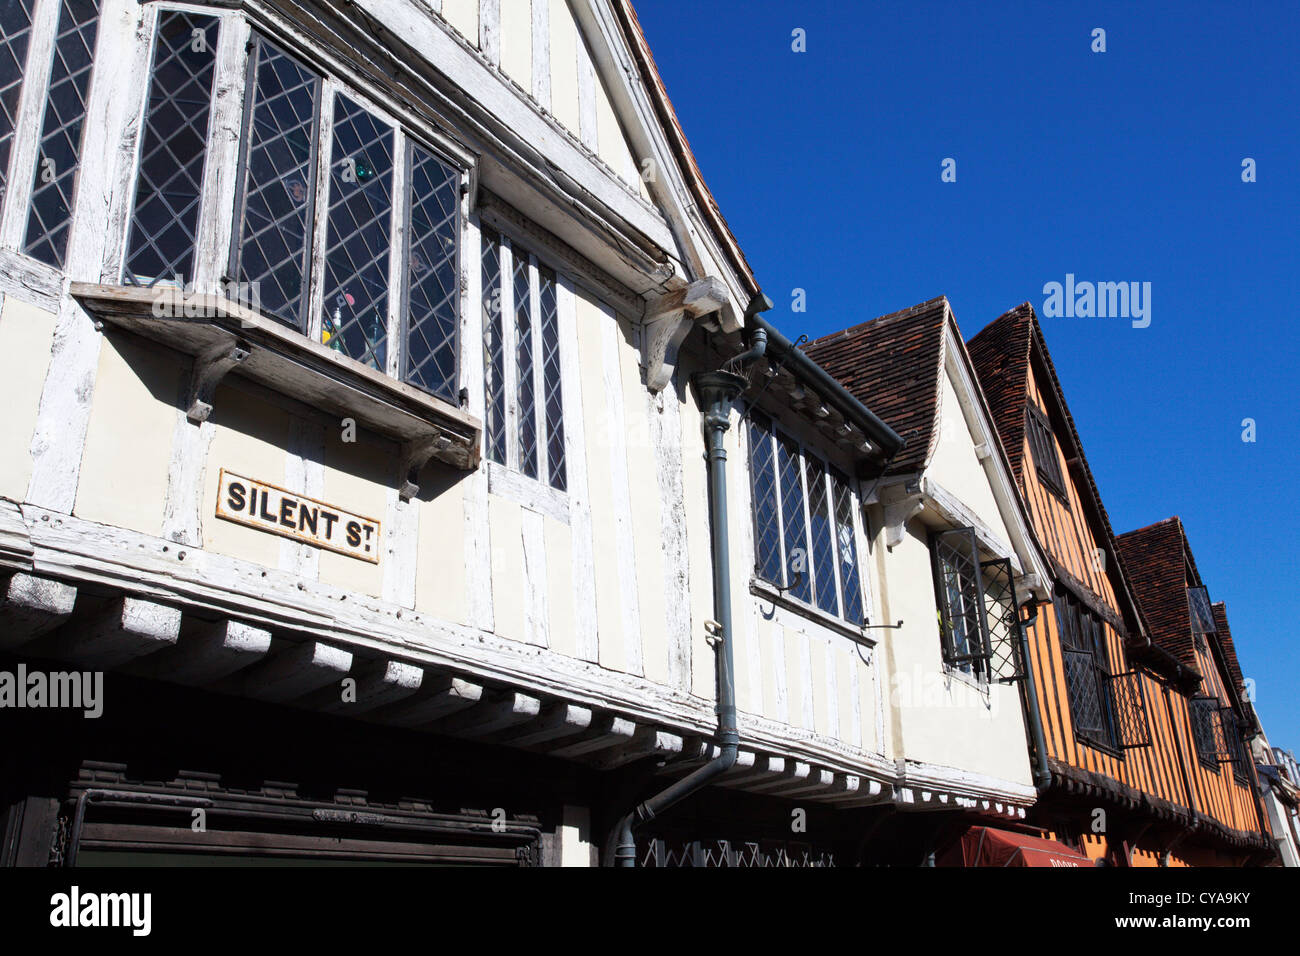 Half Timbered Buildings on Silent Street in Ipswich Suffolk England - Stock Image